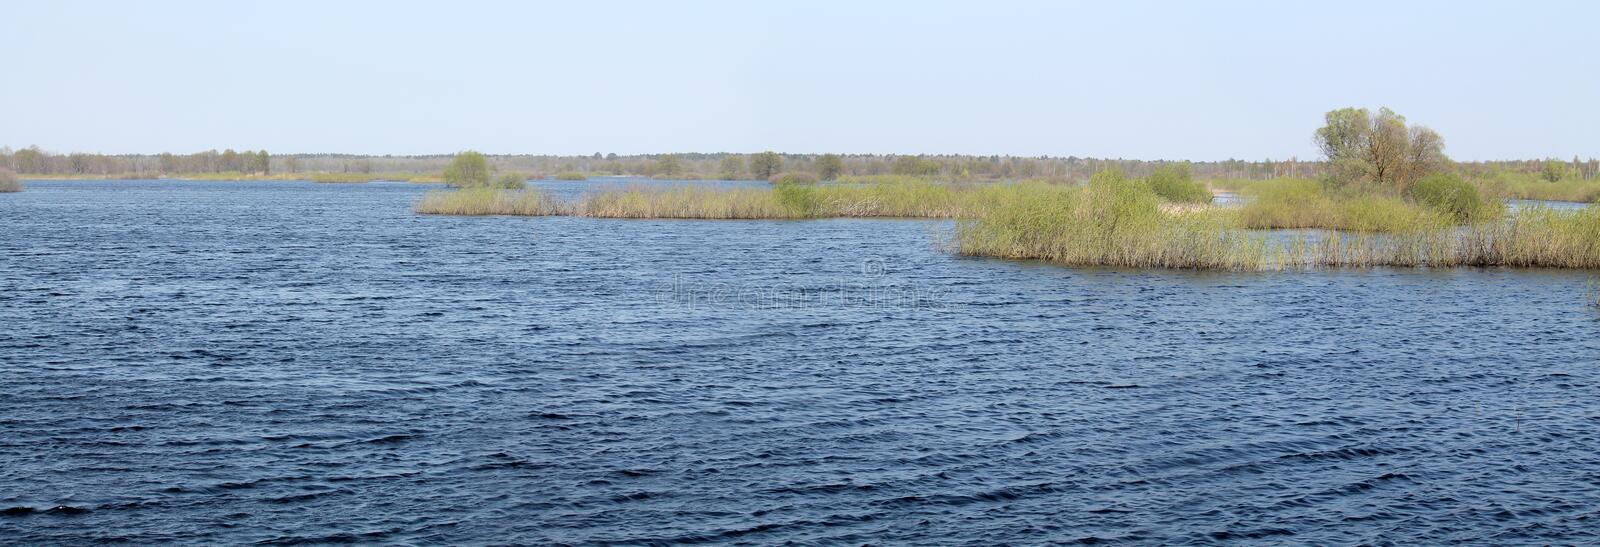 Panoramic landscape with spring flooding of Pripyat River near Borki, Zhytkavichy District of Gomel Region of Belarus royalty free stock photos